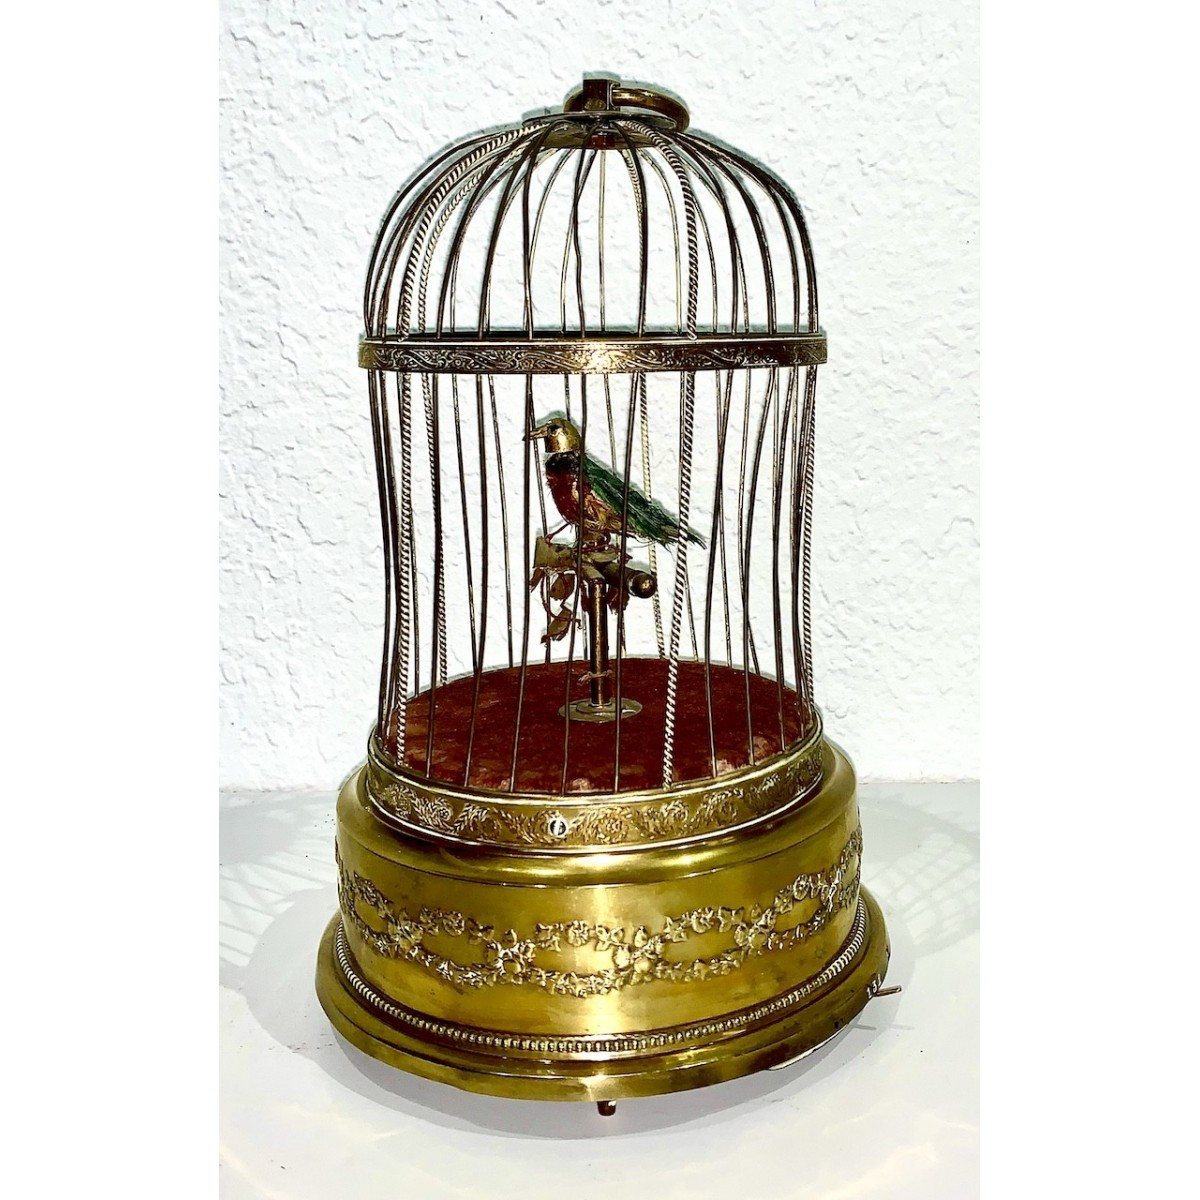 Antique bird cage automata